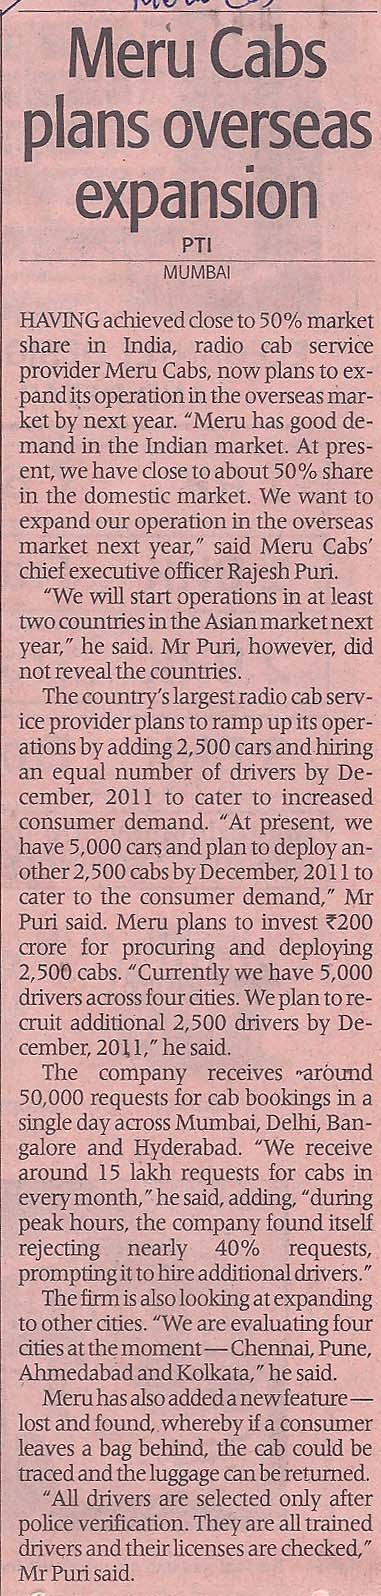 The Economic Times 27.12.10 Pg 06.jpg